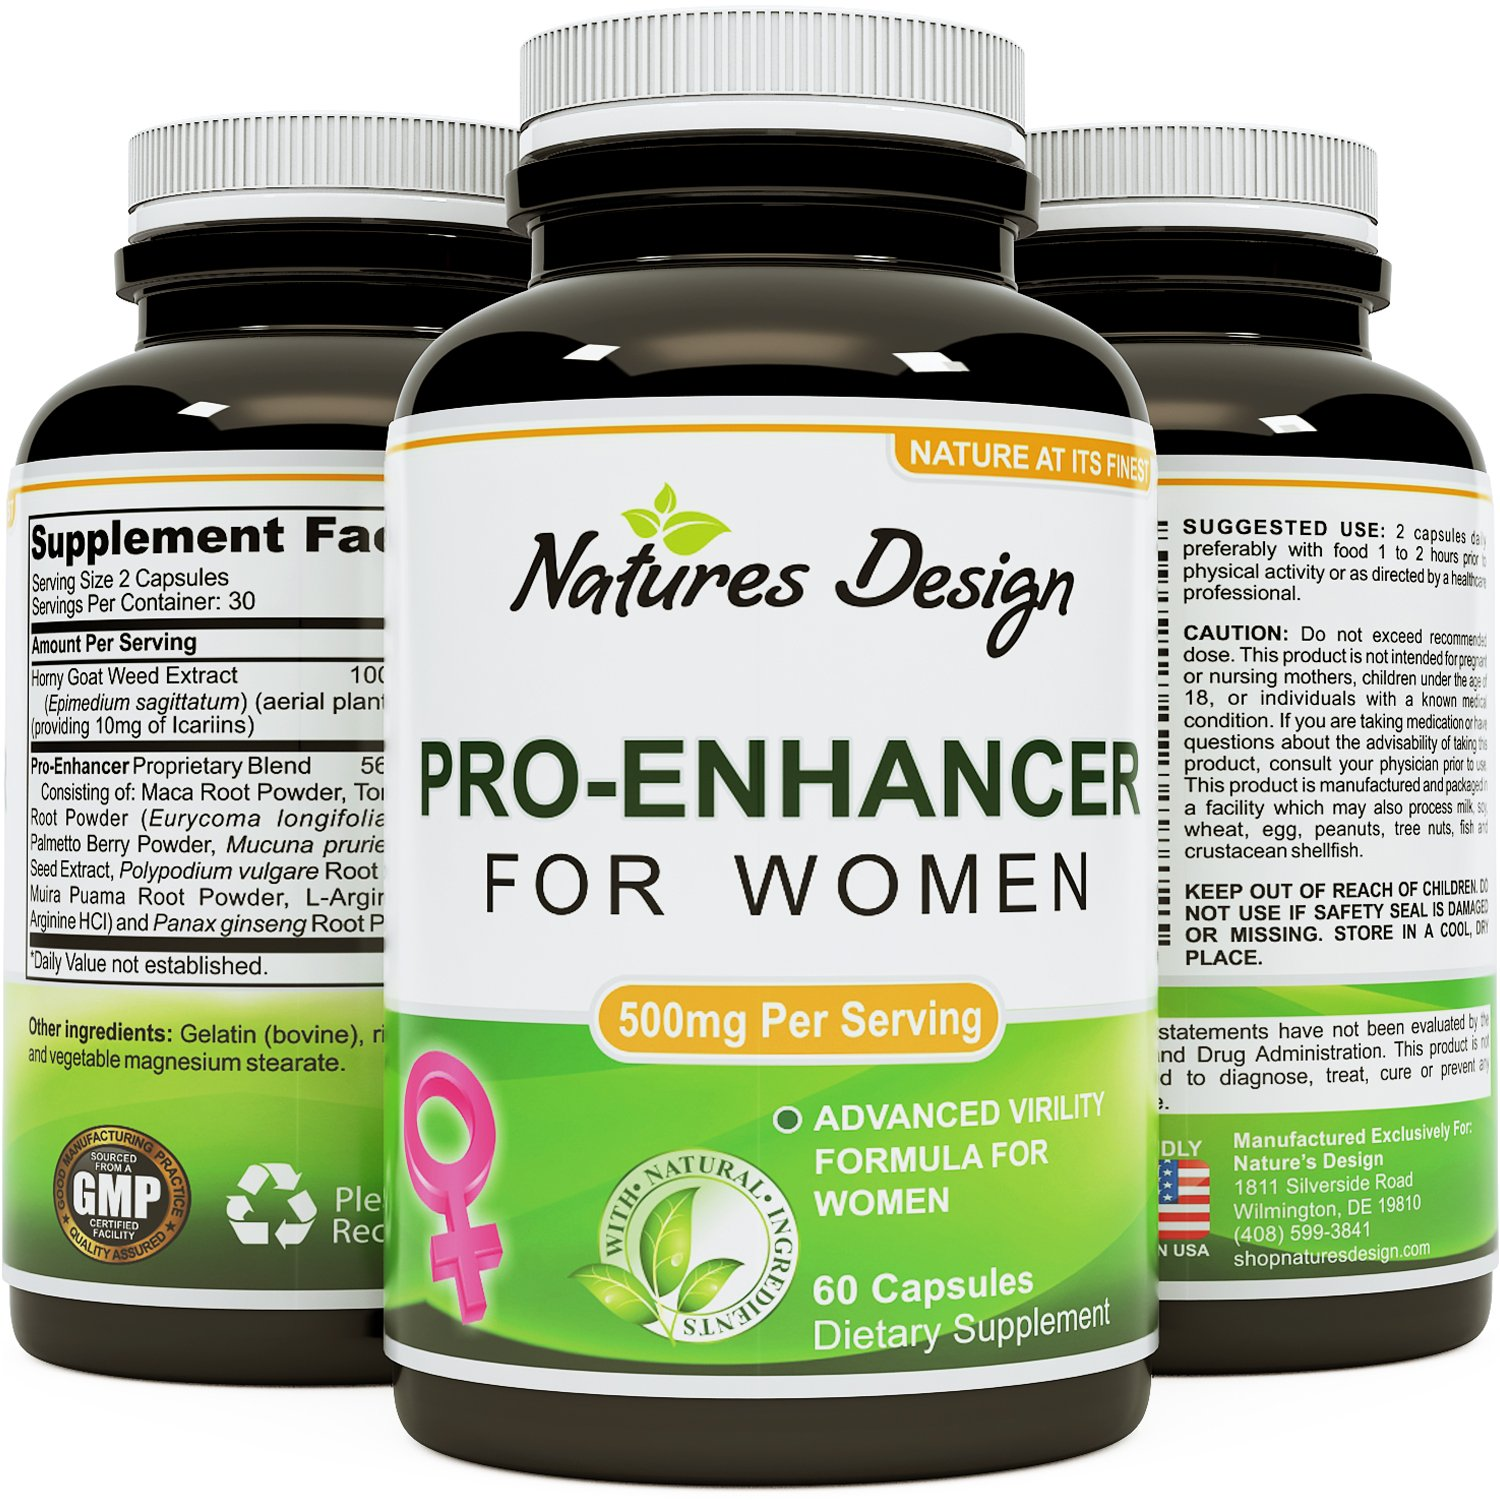 Natural Breast Enhancer Pills, Boost Bust Size and Improve Shape Naturally, Boost Your Bust  and Avoid Weight Gain Elsewhere A Breast Enlargement Supplements with Ginseng + L Arginine